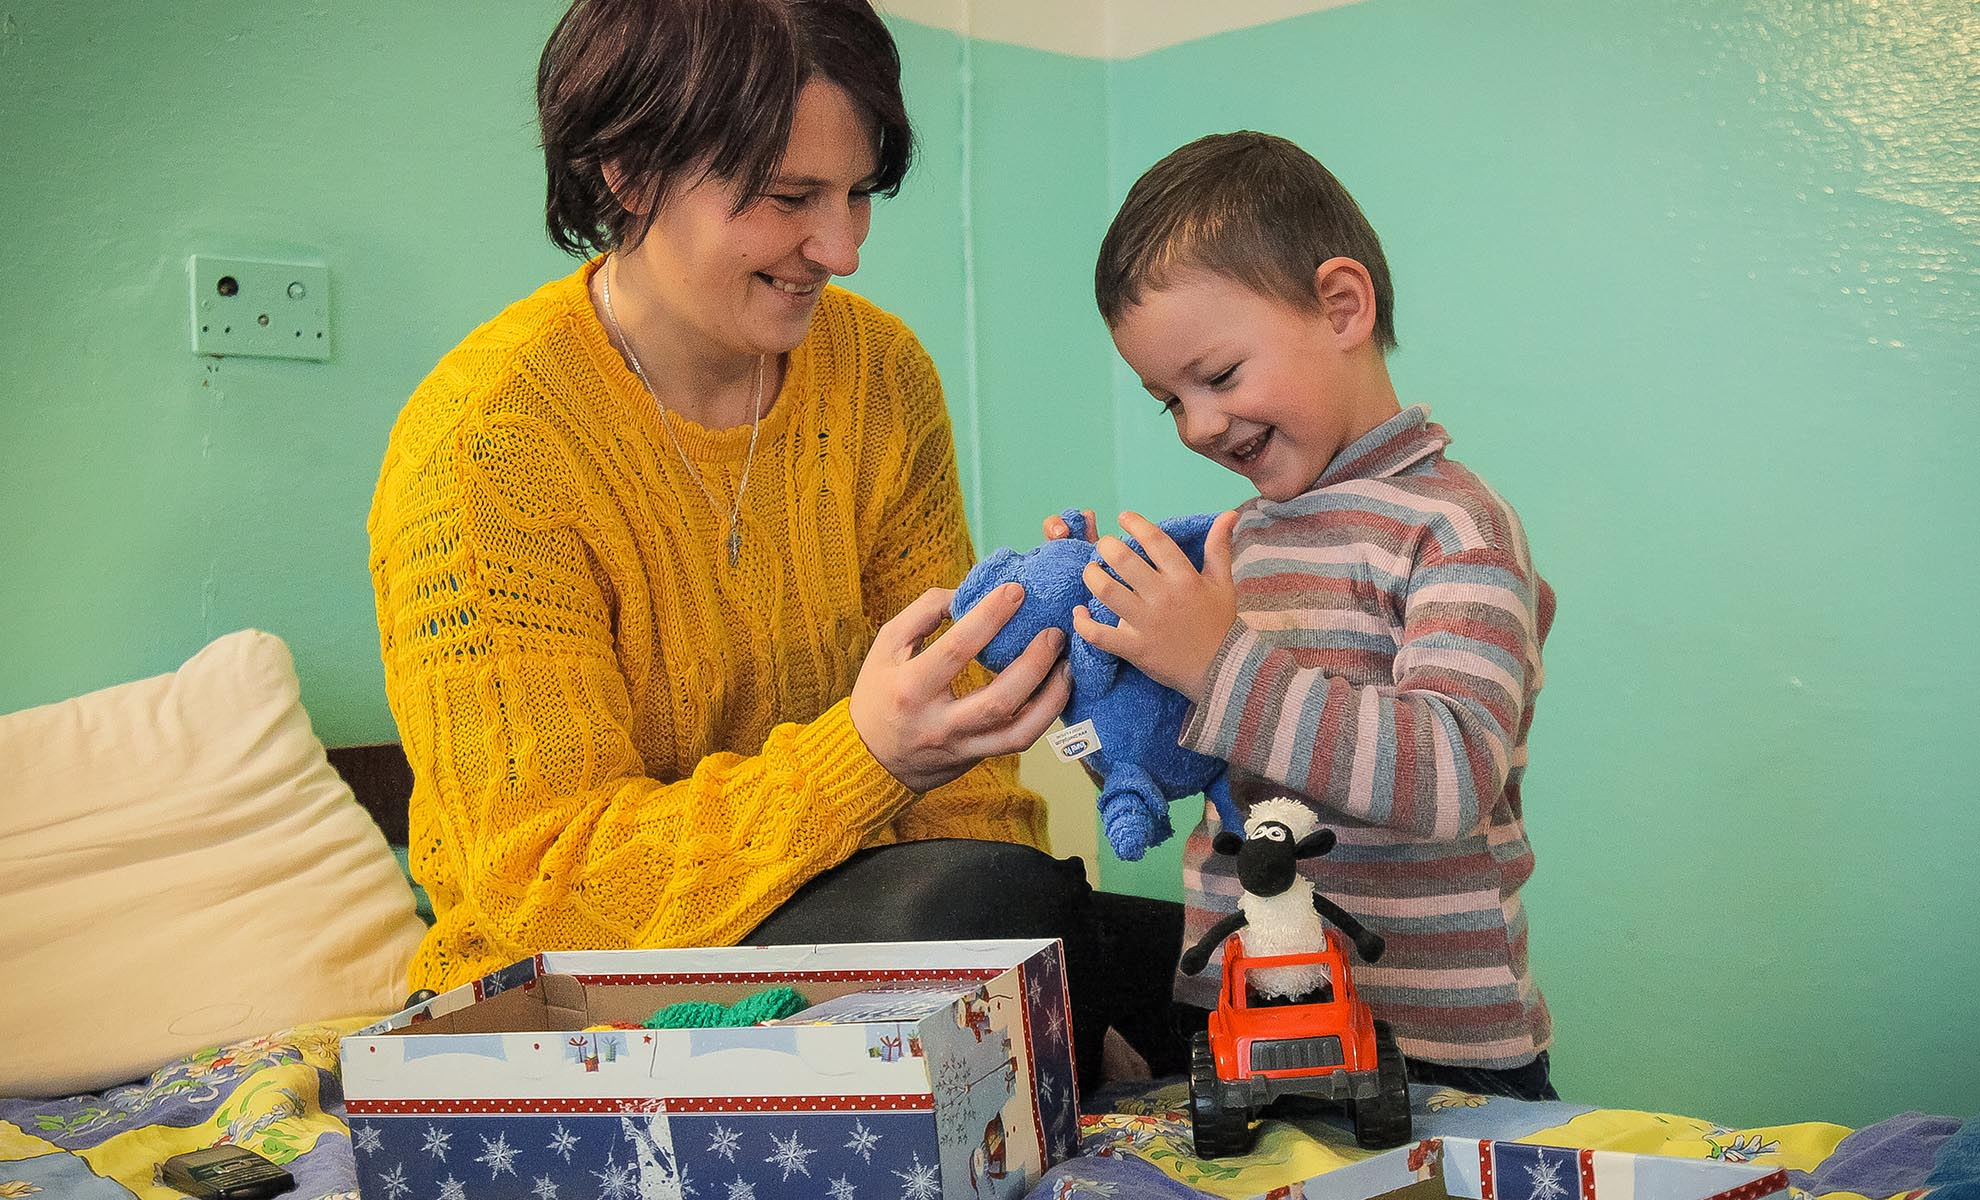 Header image - child and adult exploring shoebox gift